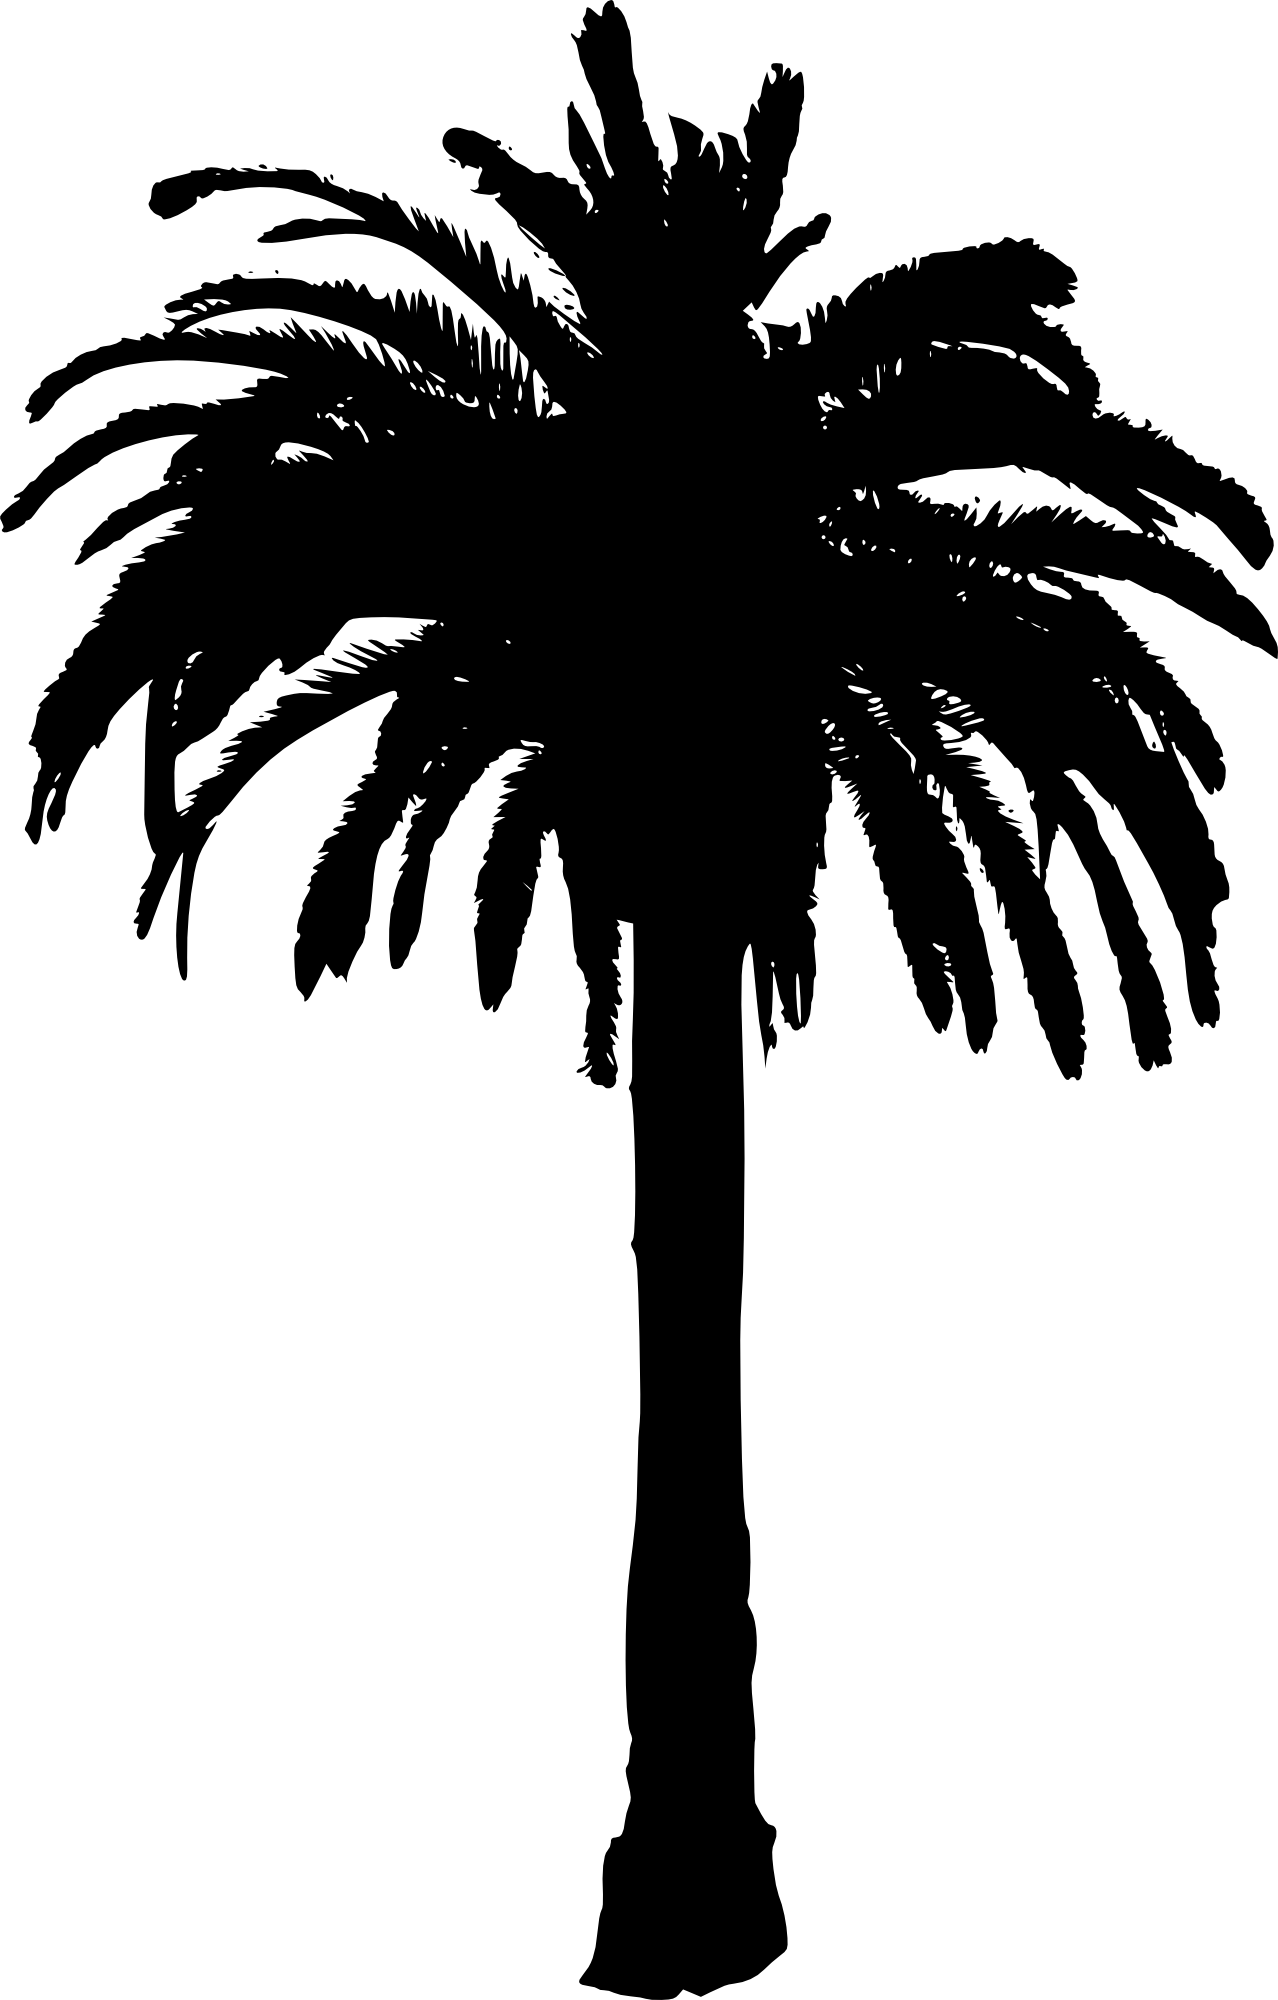 Palm leaf silhouette png. Pictures of trees at